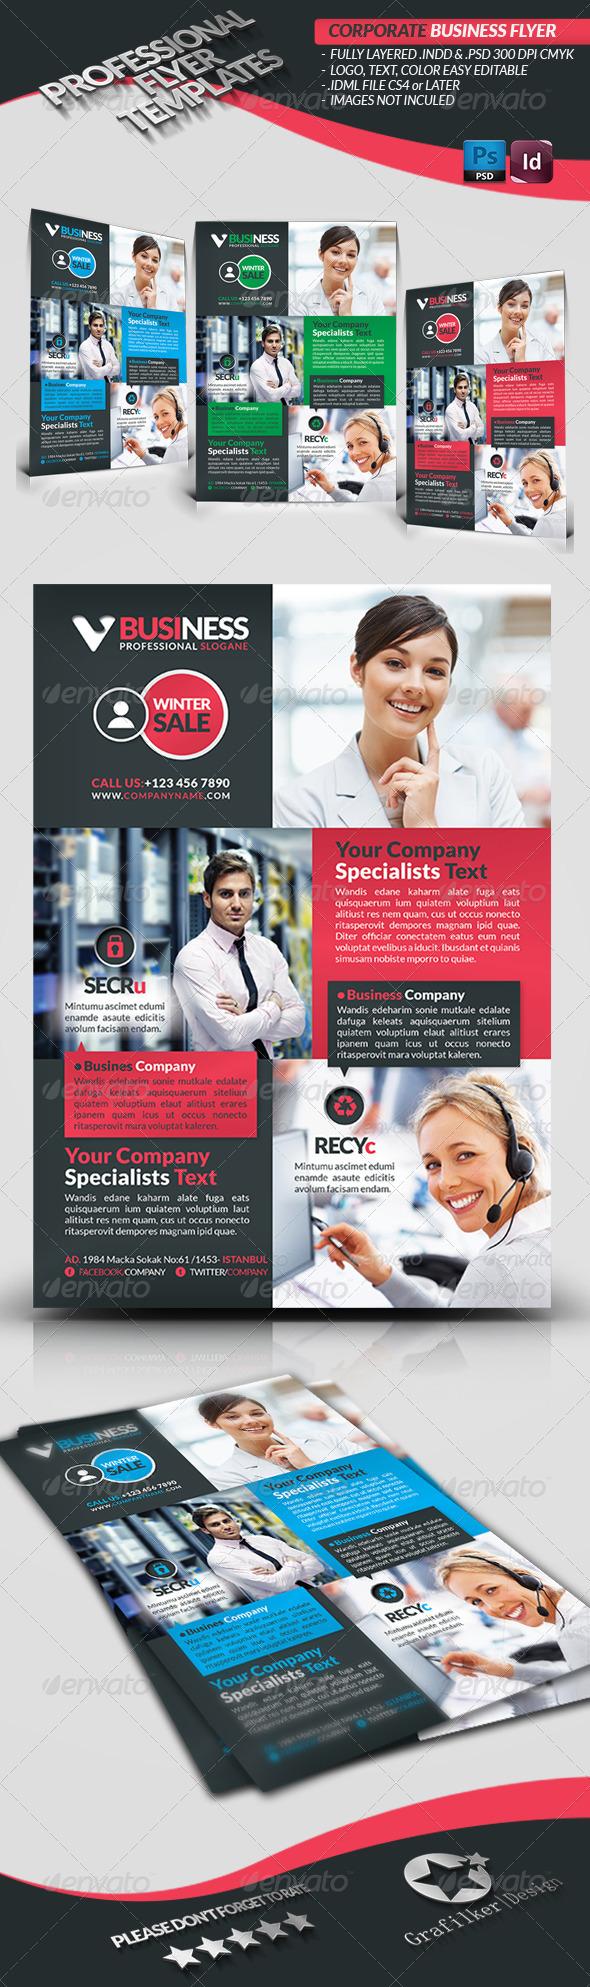 GraphicRiver Corporate Business Flyer 3729986